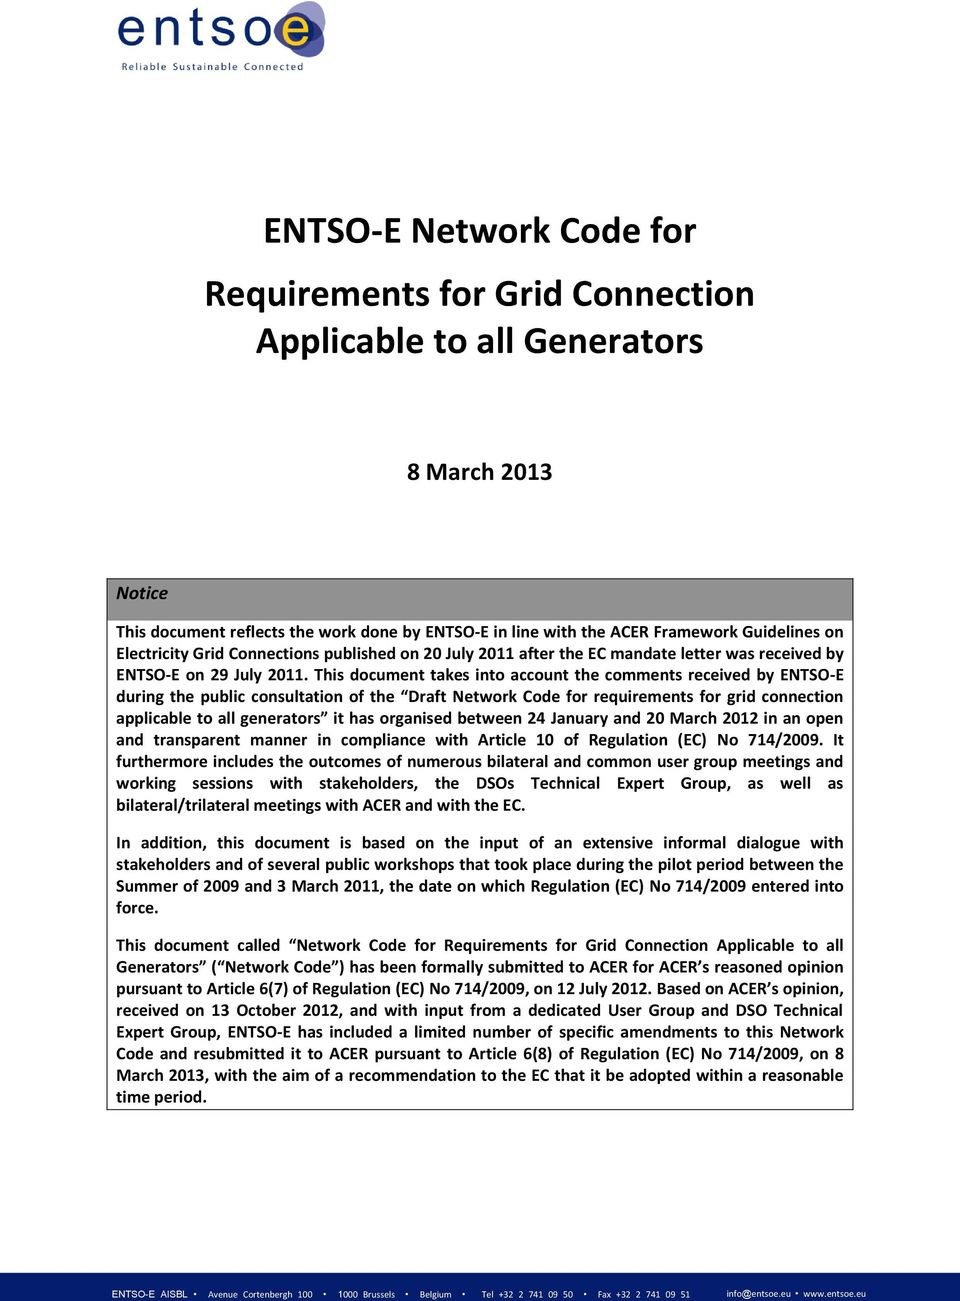 This document takes into account the comments received by ENTSO-E during the public consultation of the Draft Network Code for requirements for grid connection applicable to all generators it has